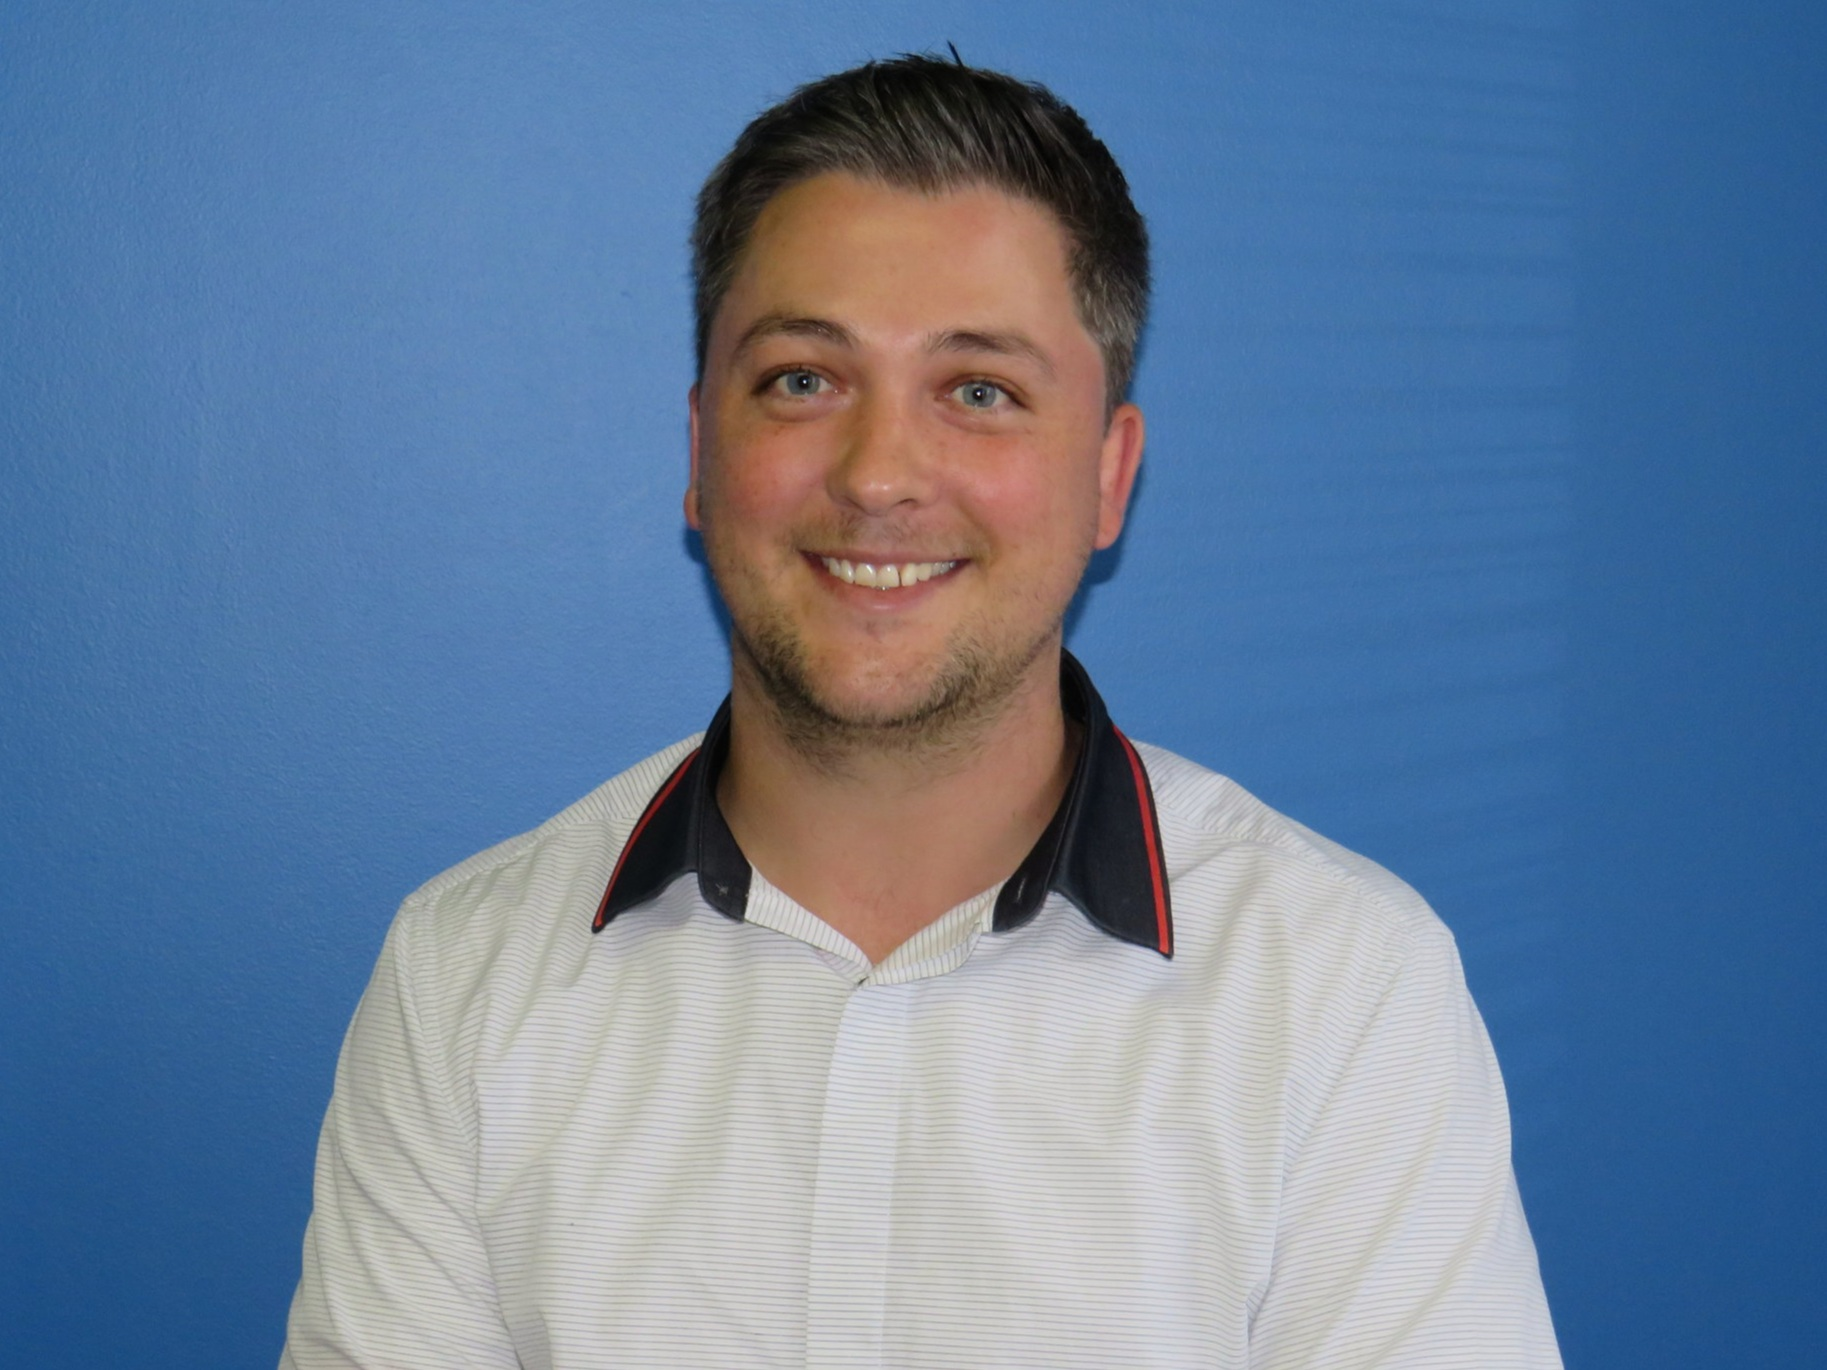 Copy of TED TAIT, Account Executive